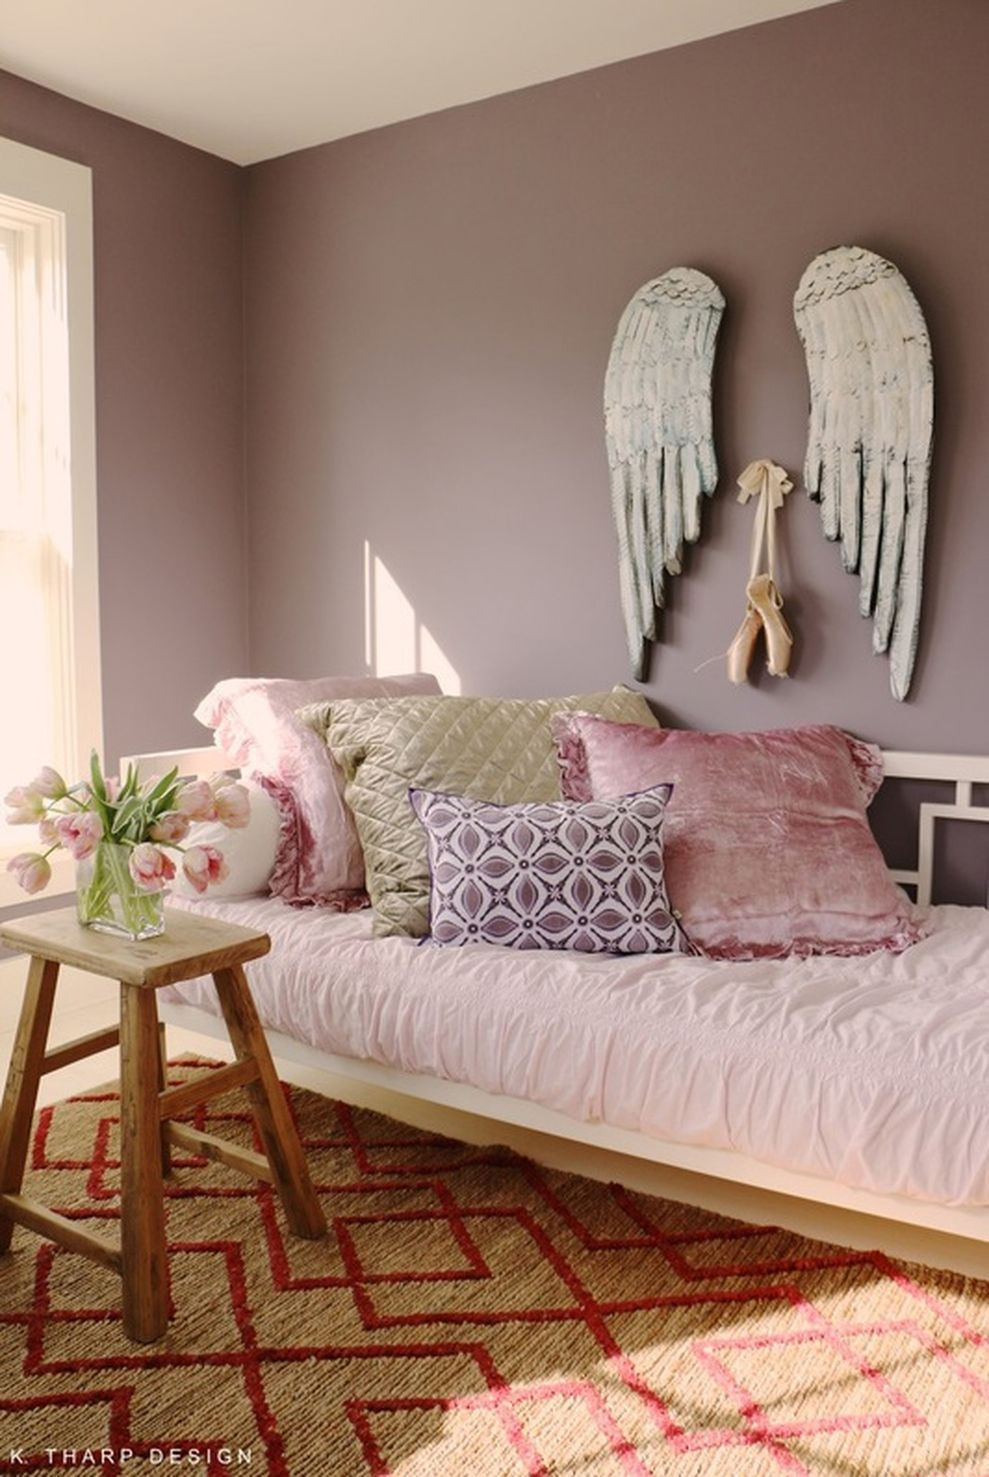 86 Cute Bedroom Design Ideas with Pink And Green Walls